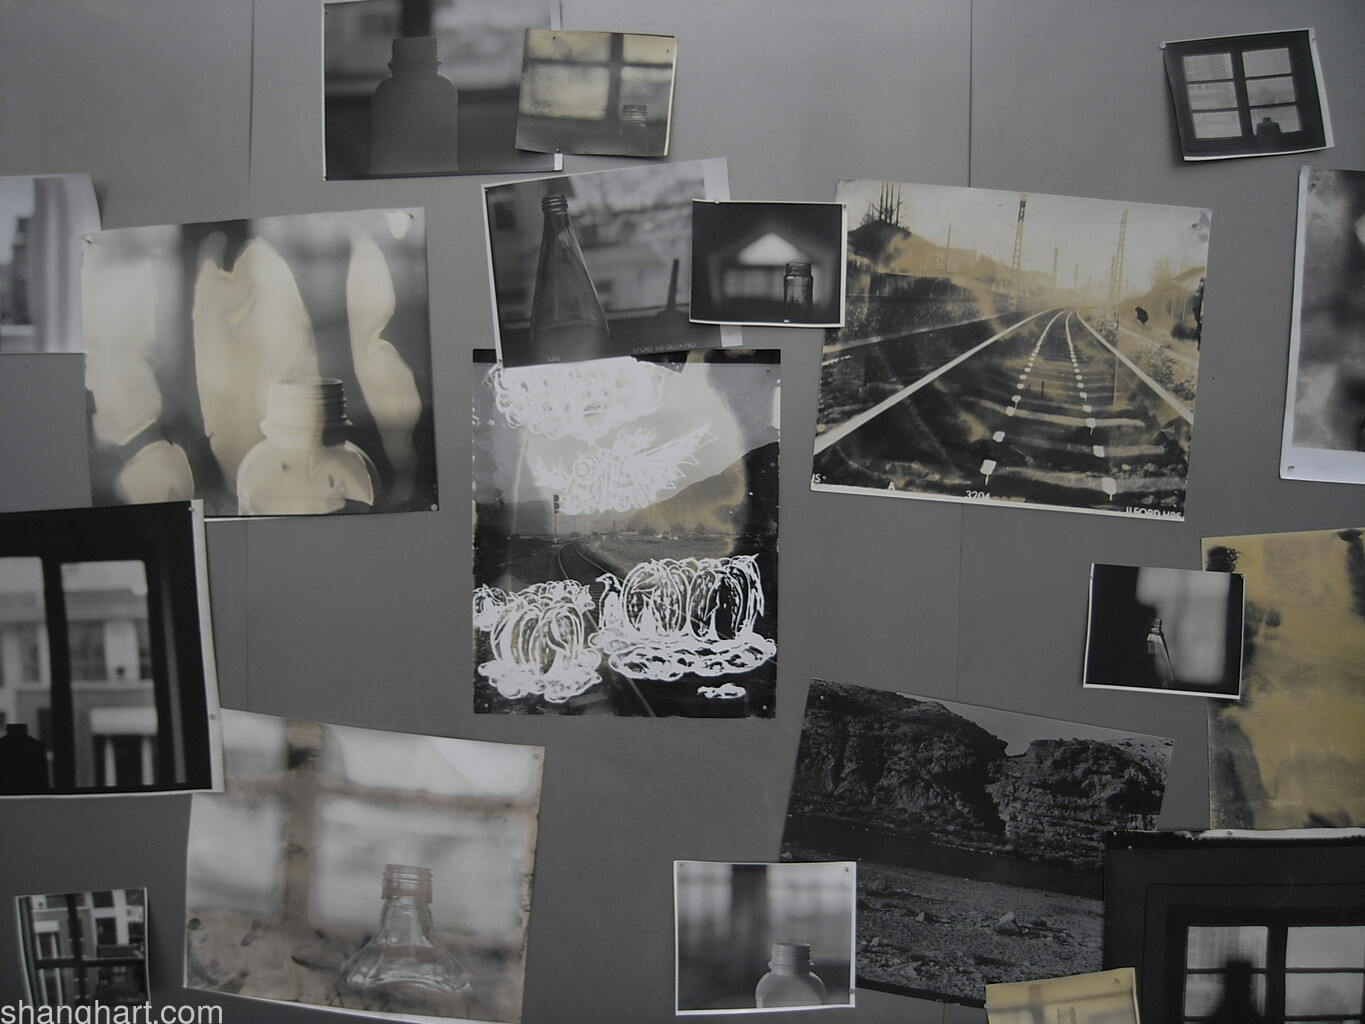 Installation view of the photography work (detail)